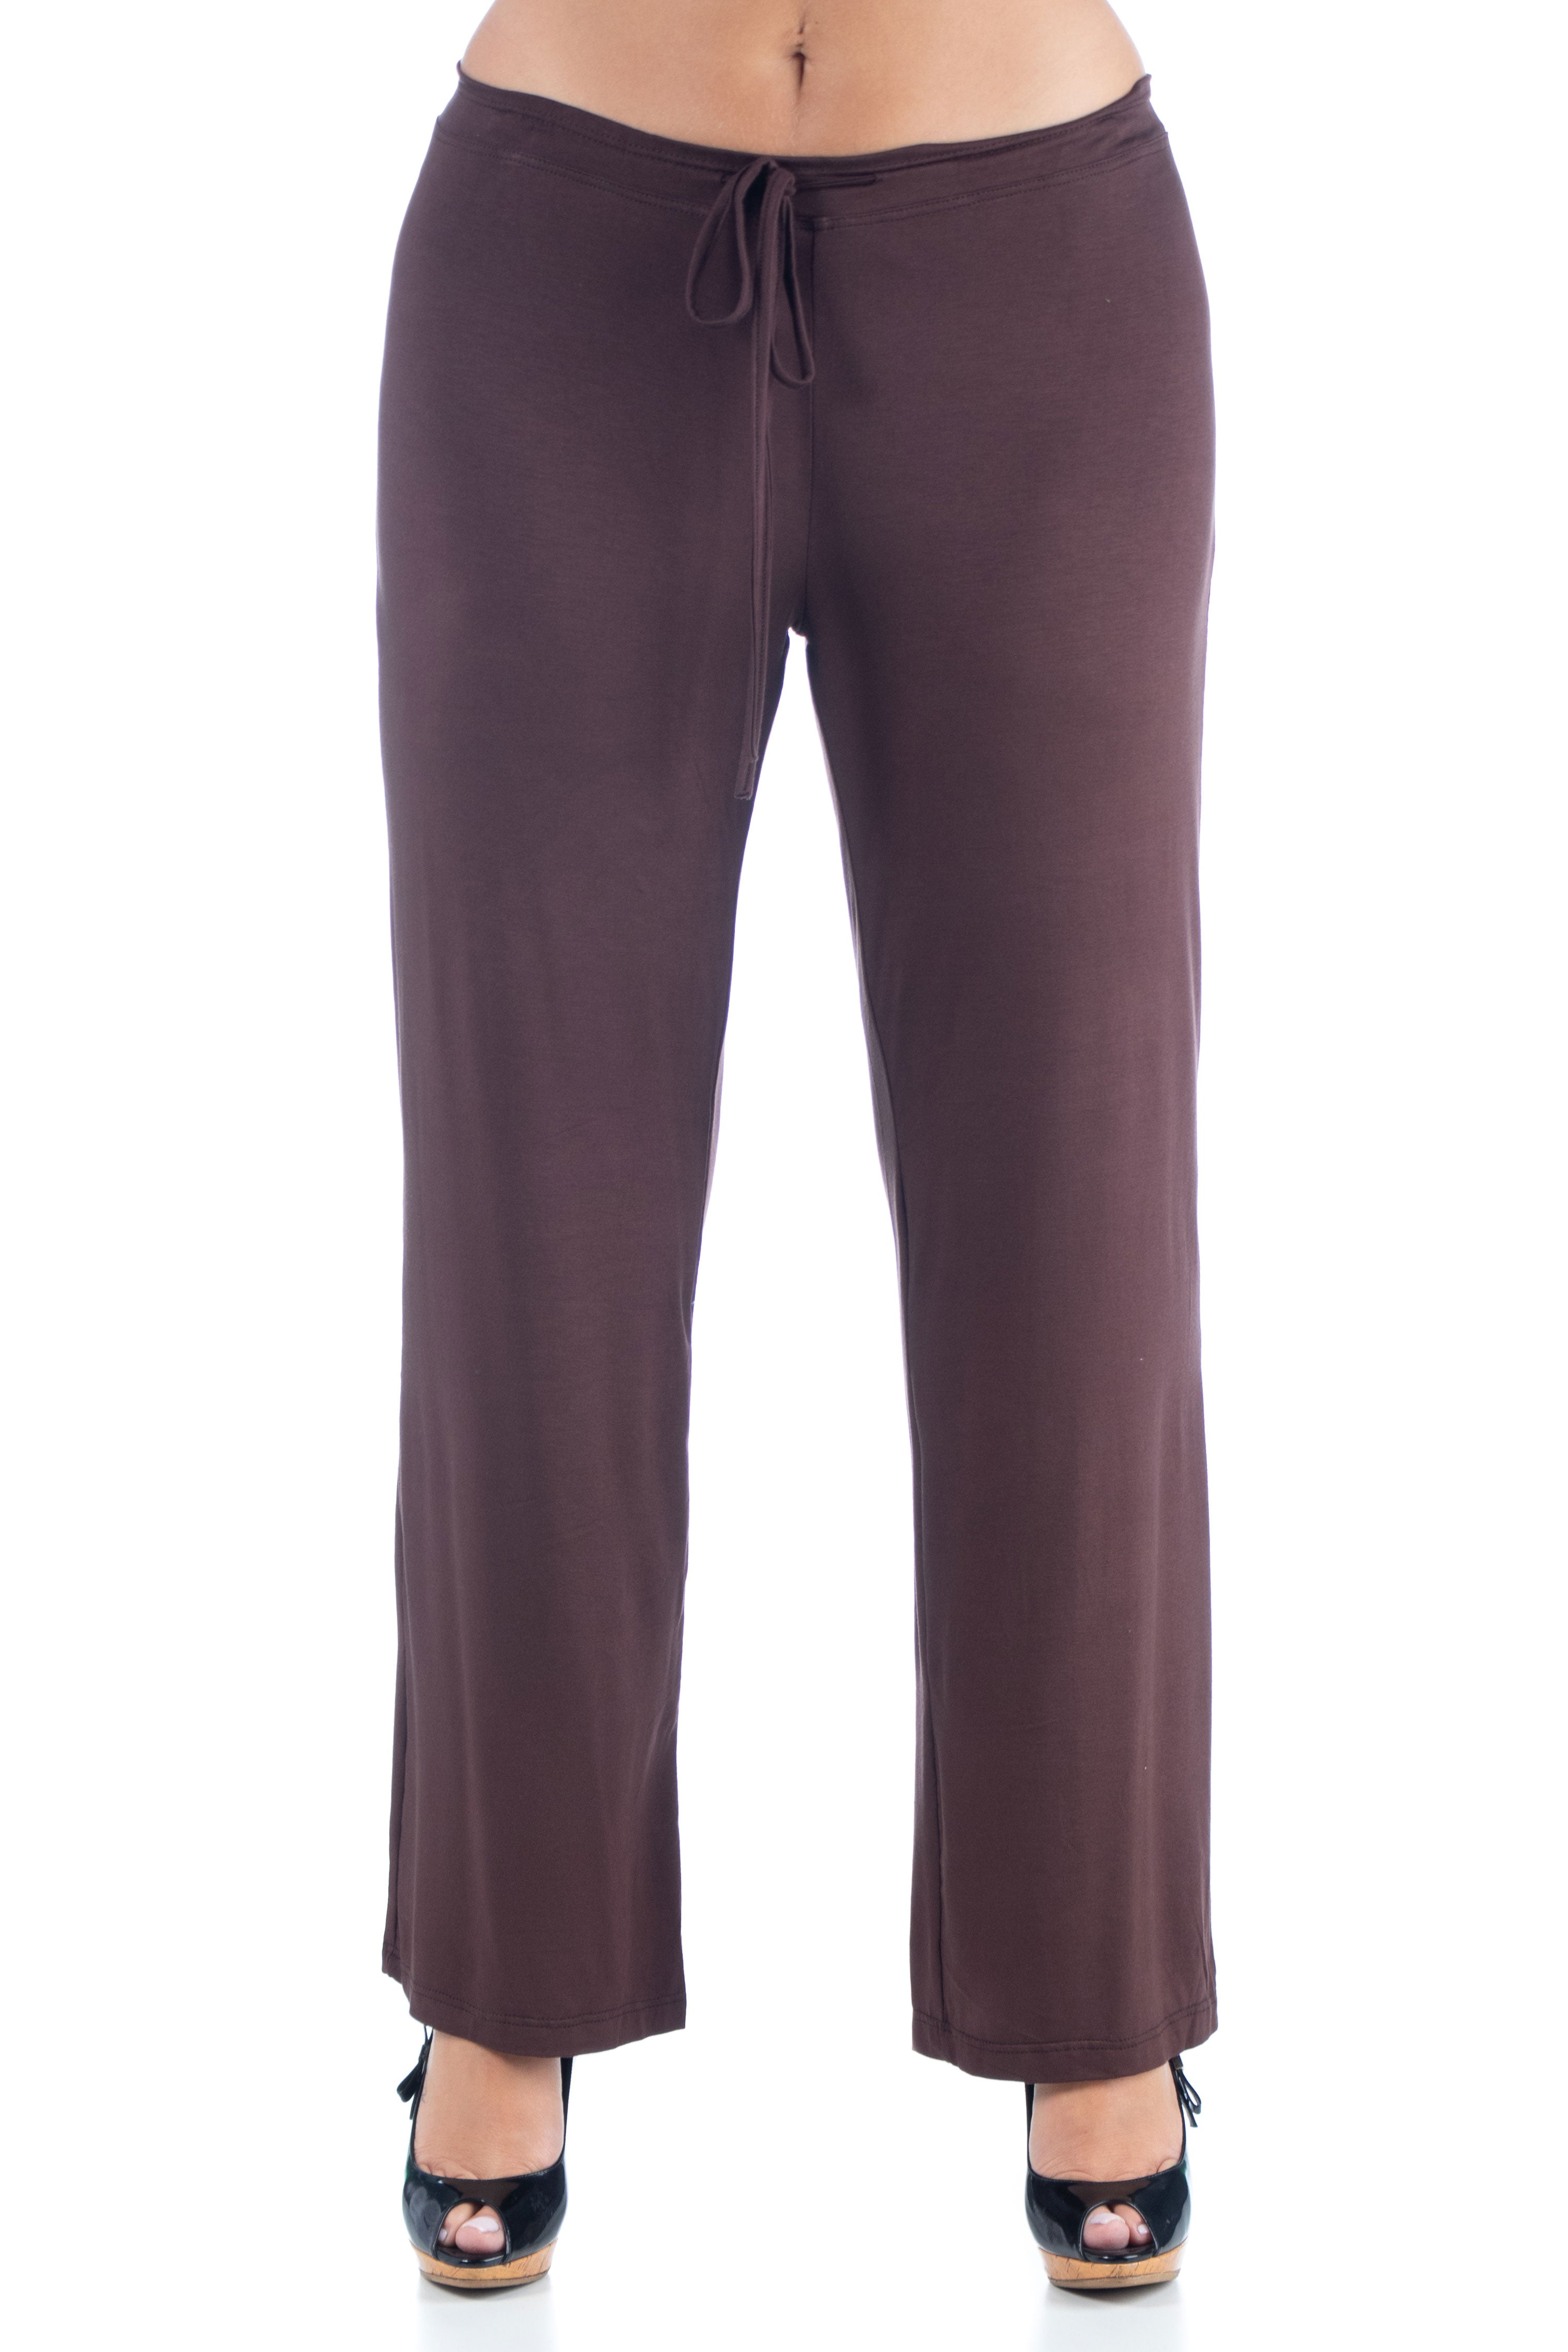 24seven Comfort Apparel Comfortable Stretch Draw String Plus Size Pants